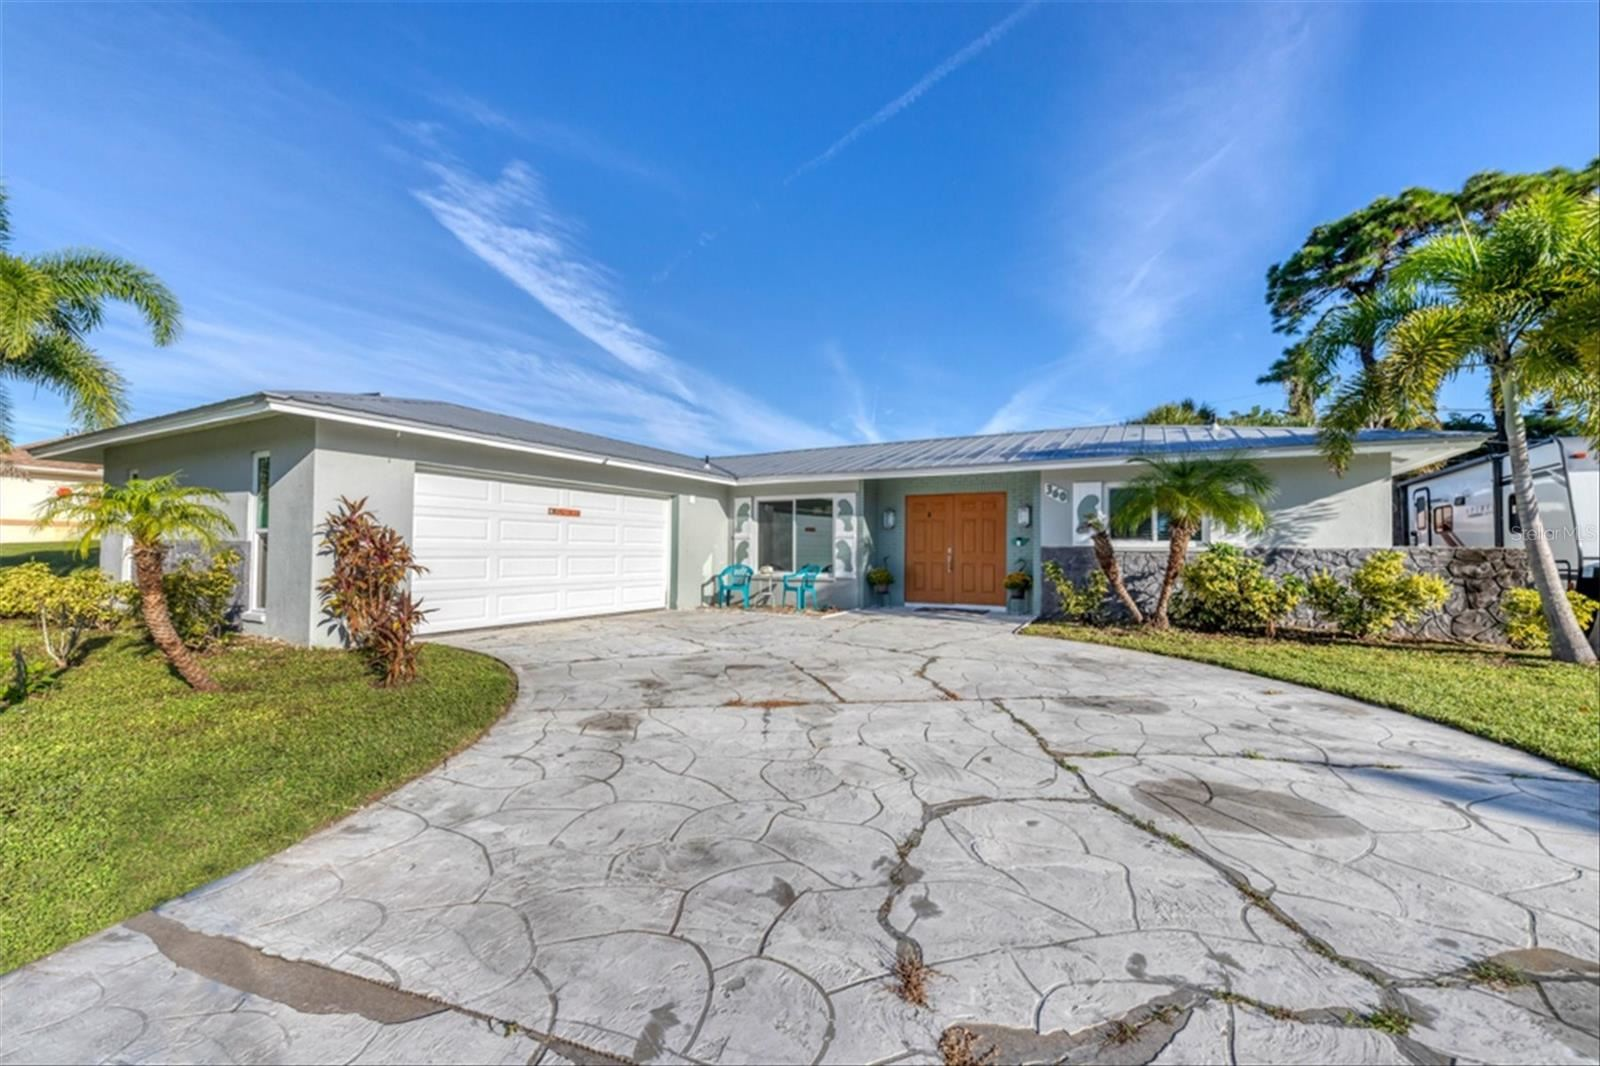 Photo of 360 E WENTWORTH CIRCLE, ENGLEWOOD, FL 34223 (MLS # D6121778)